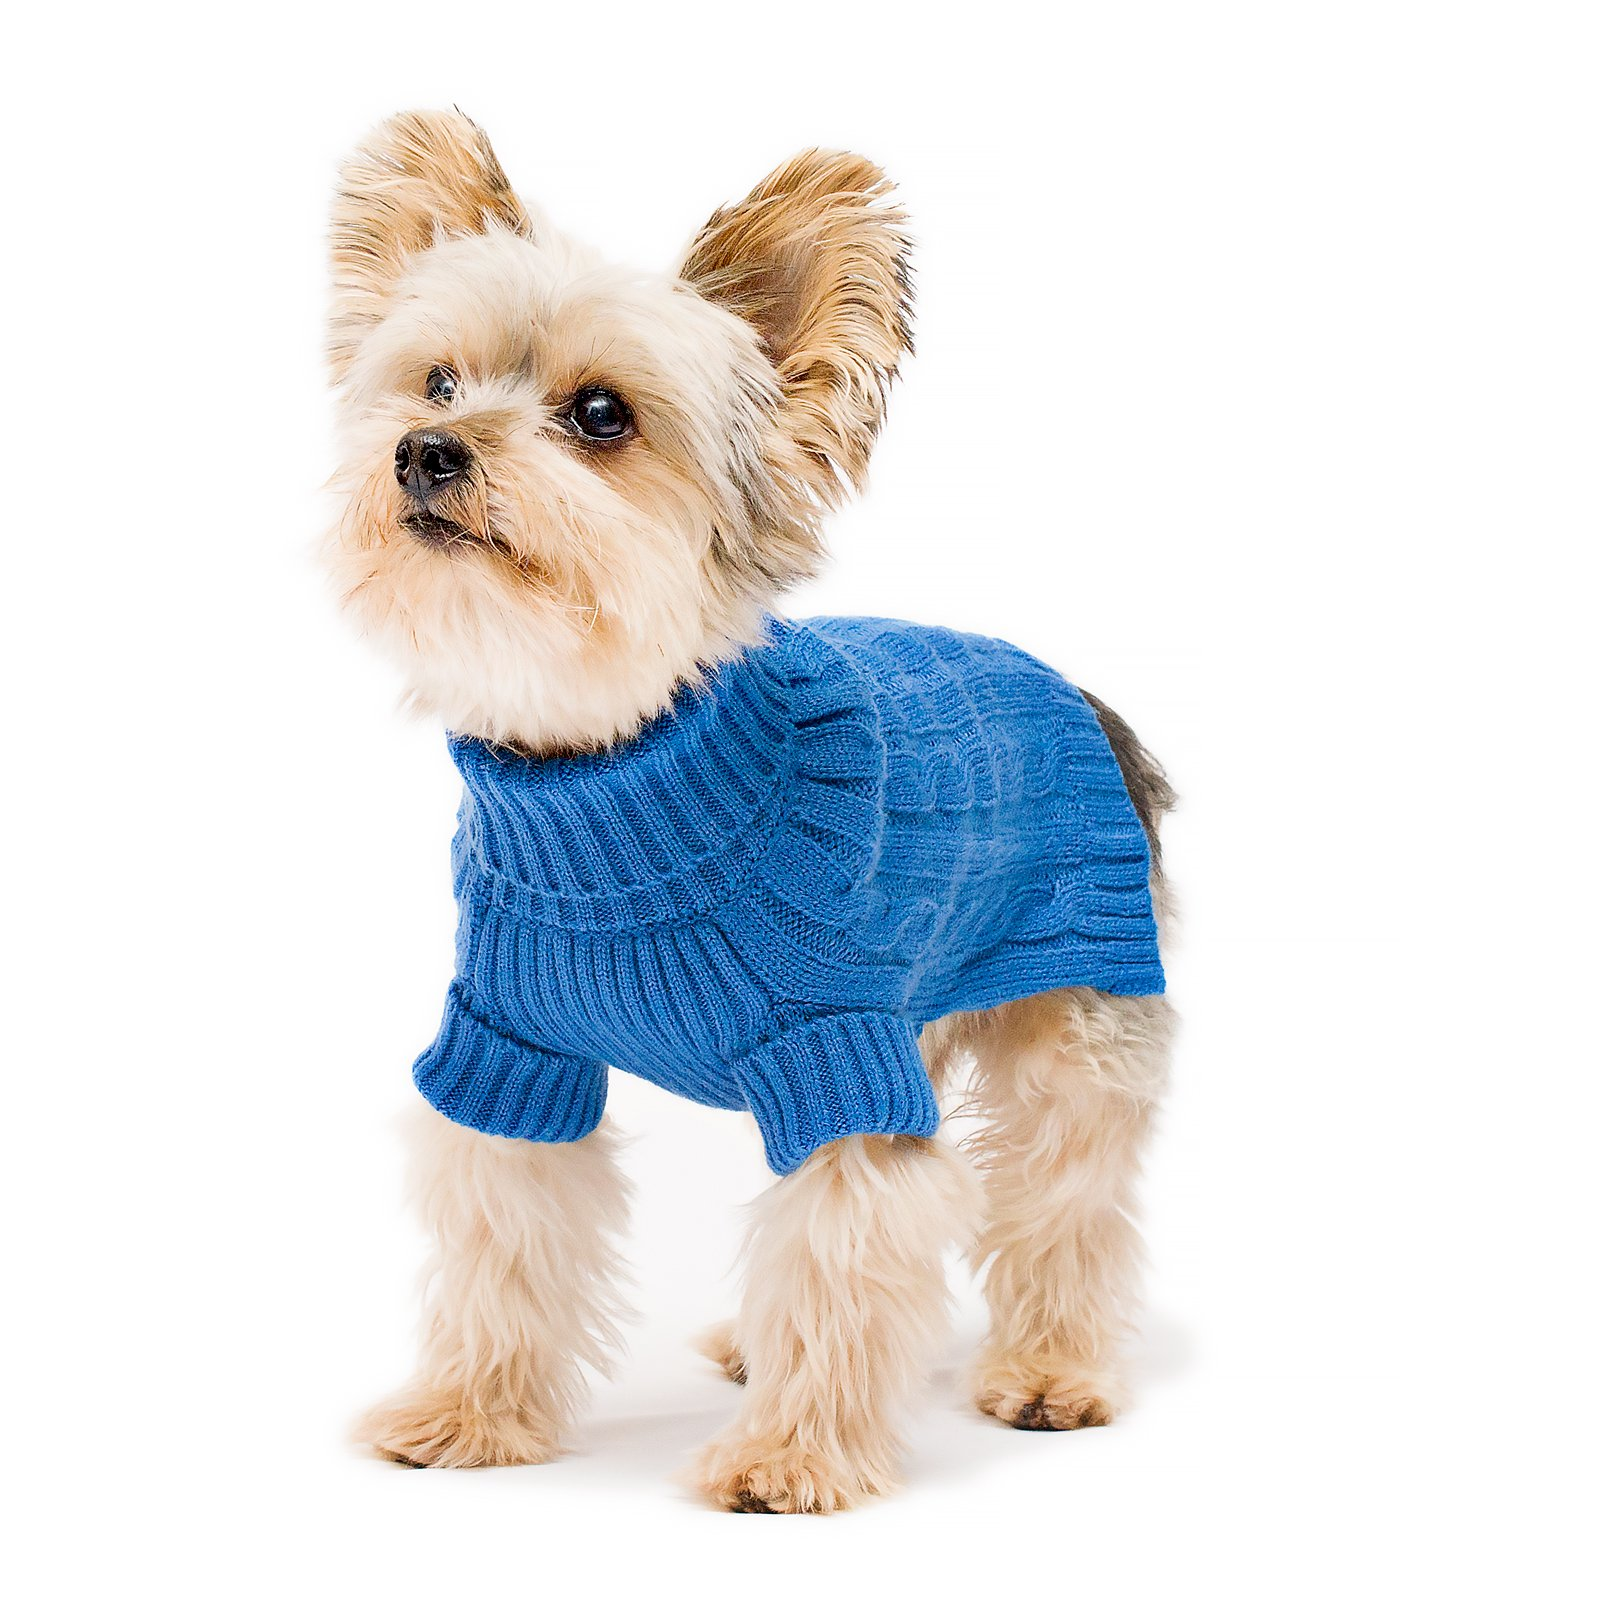 a736c4206145 Best Rated in Dog Sweaters   Helpful Customer Reviews - Amazon.com